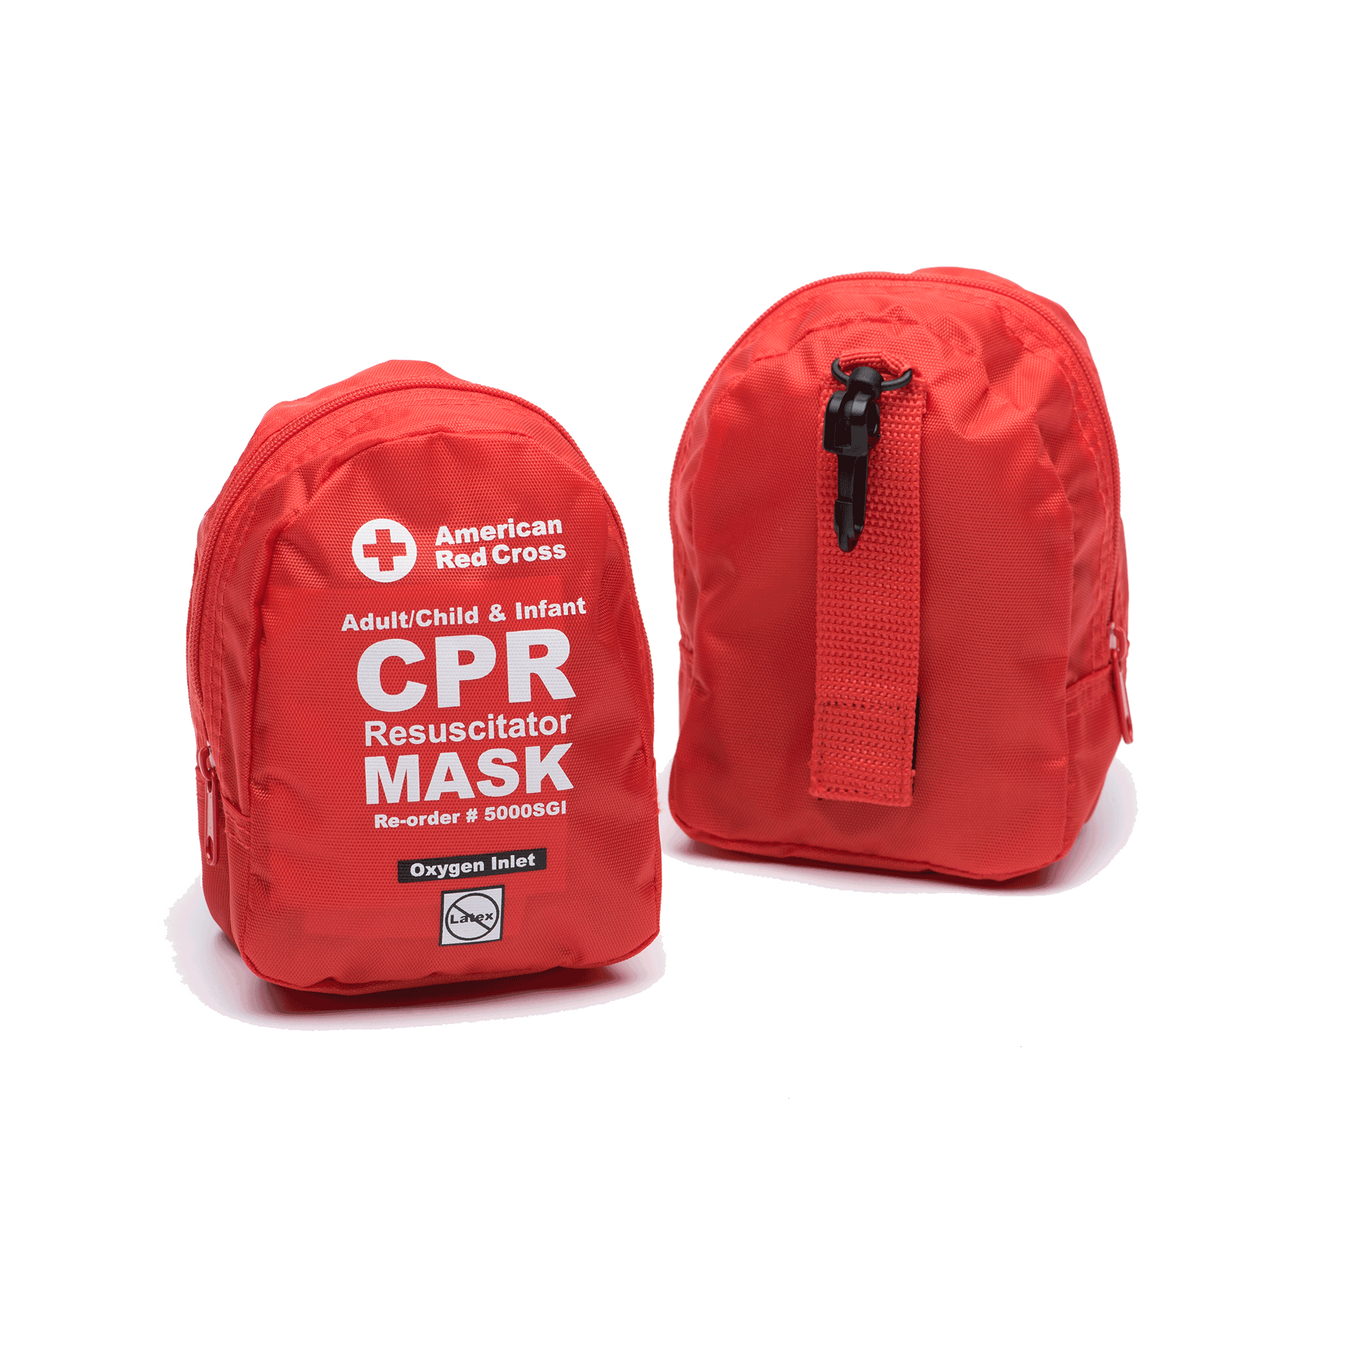 Jun 04, · The official American Red Cross First Aid app puts expert advice for everyday emergencies in your hand. Get the app and be prepared for what life brings. With videos, interactive quizzes and simple step-by-step advice it's never been easier to know first aid/5().